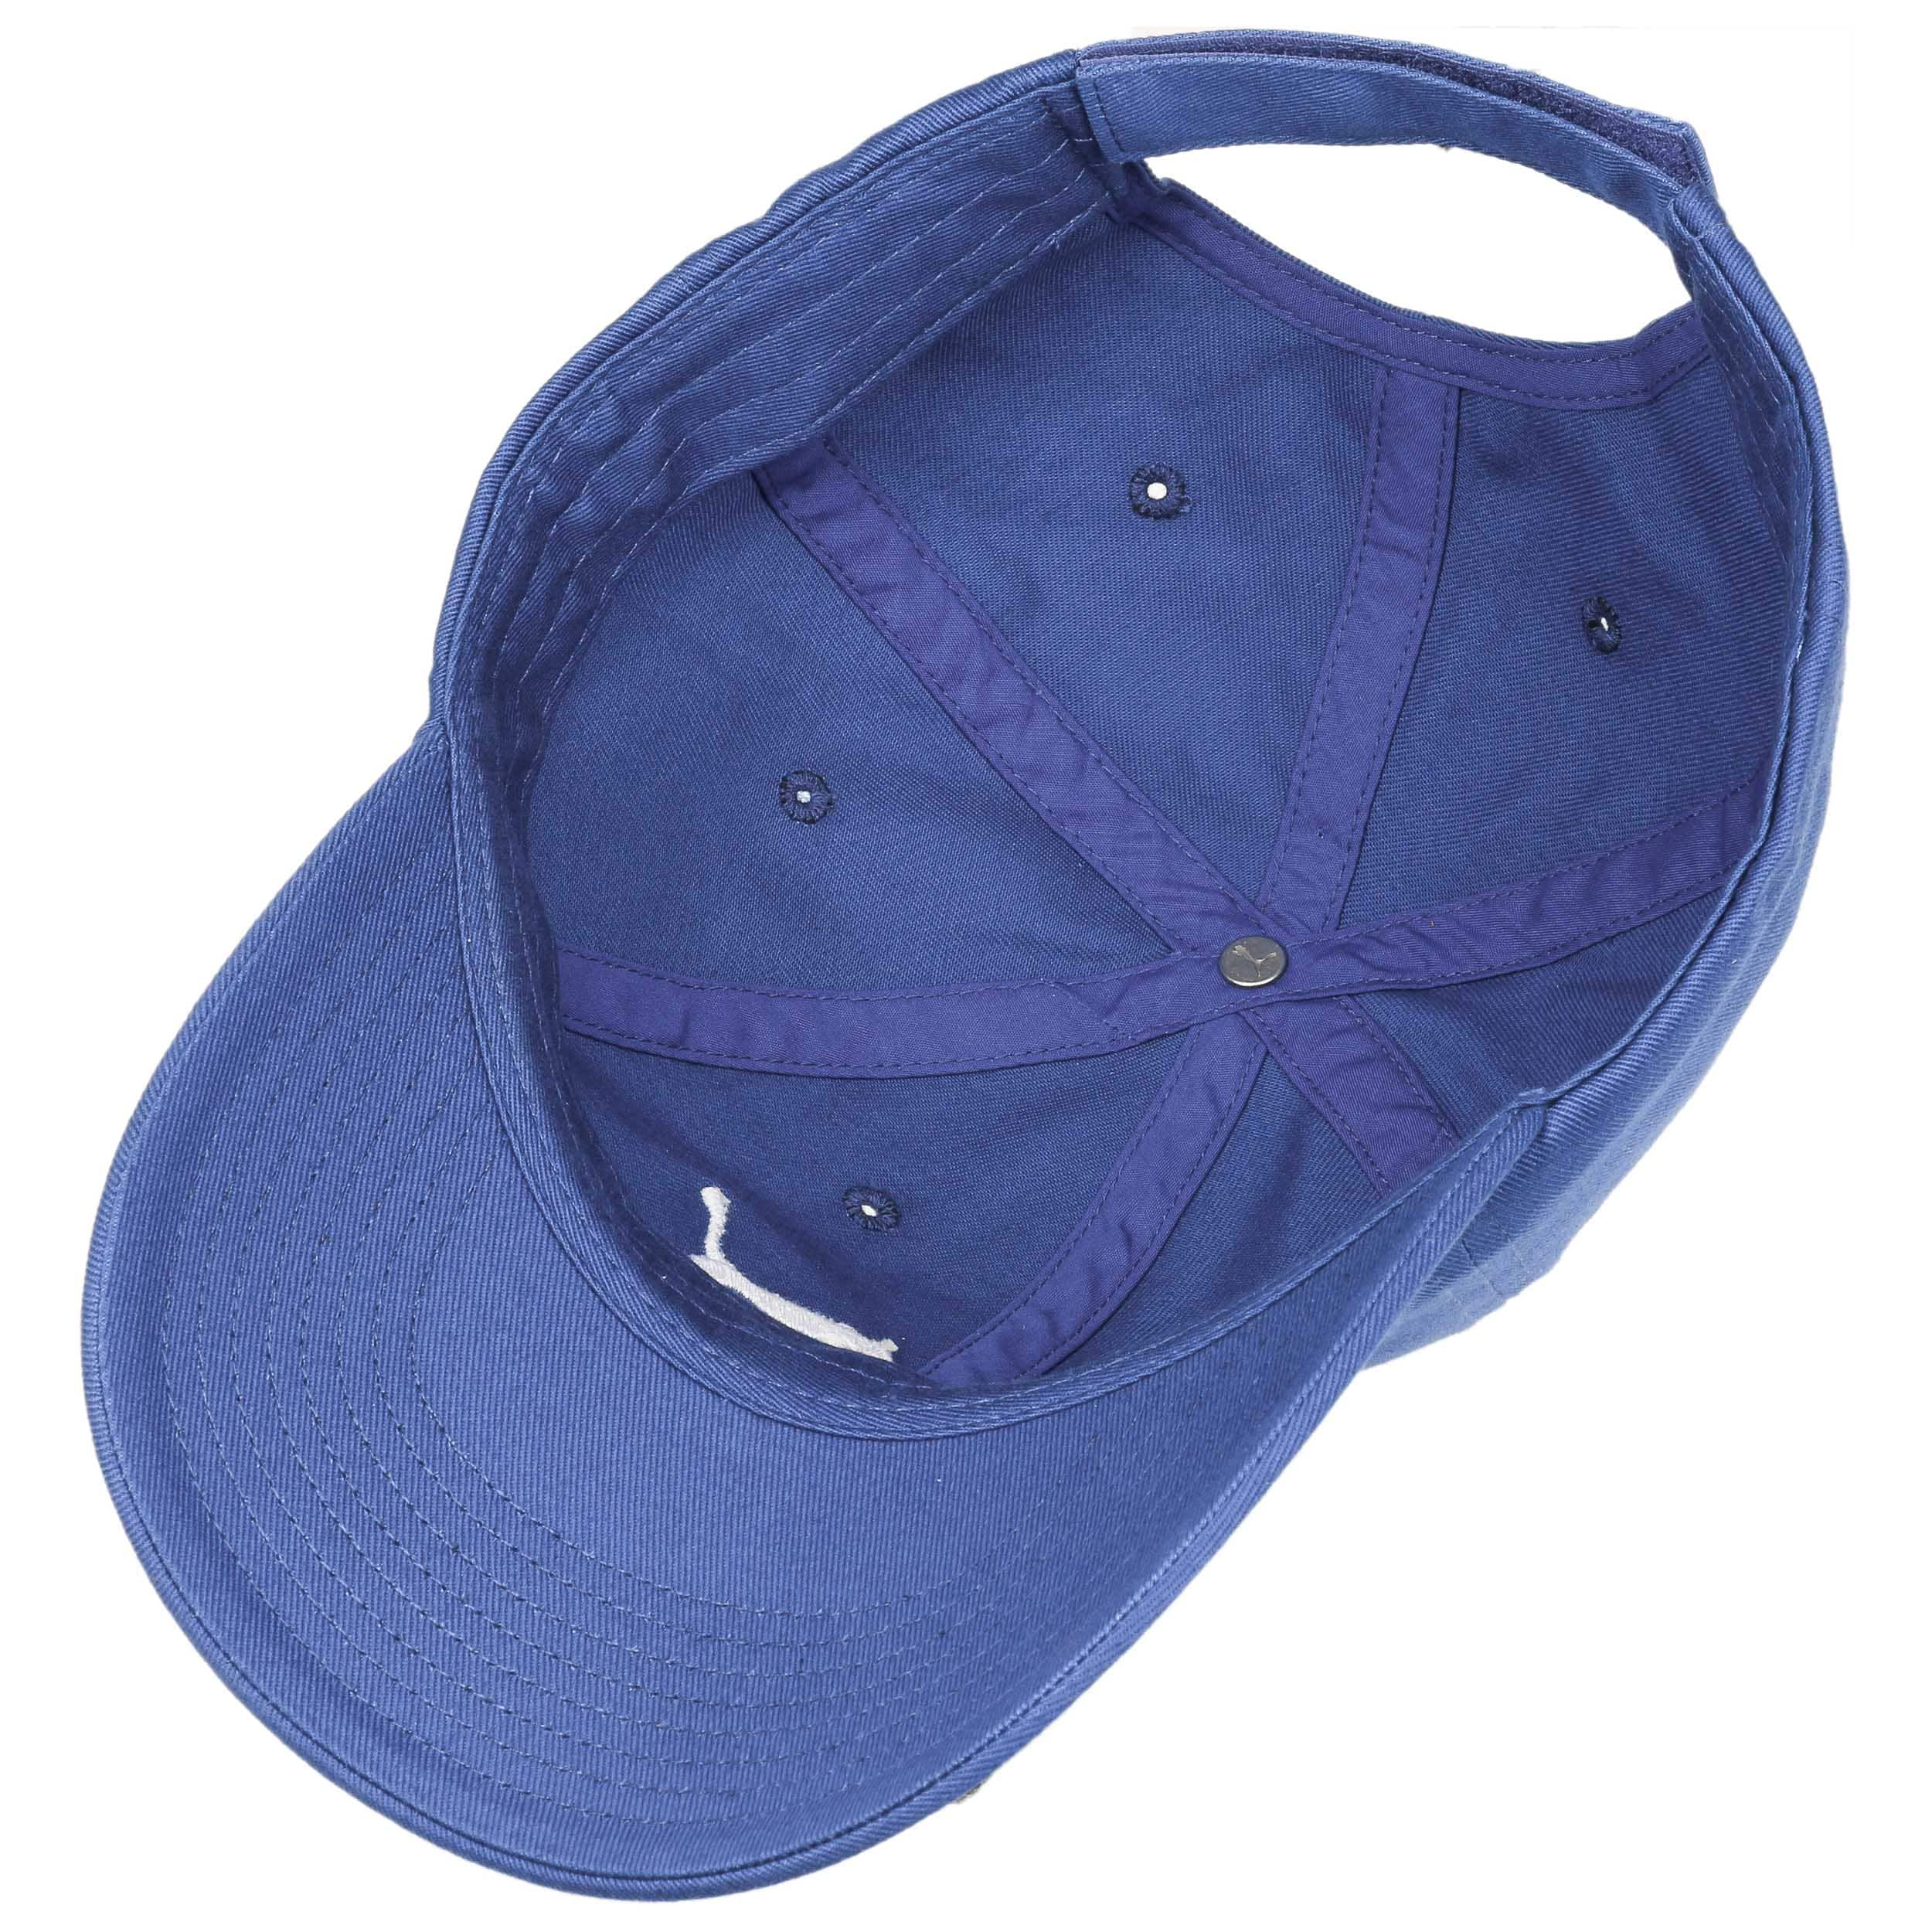 1 Baseball Cap by PUMA - royal-blue 2 ... 4fd5734107c1